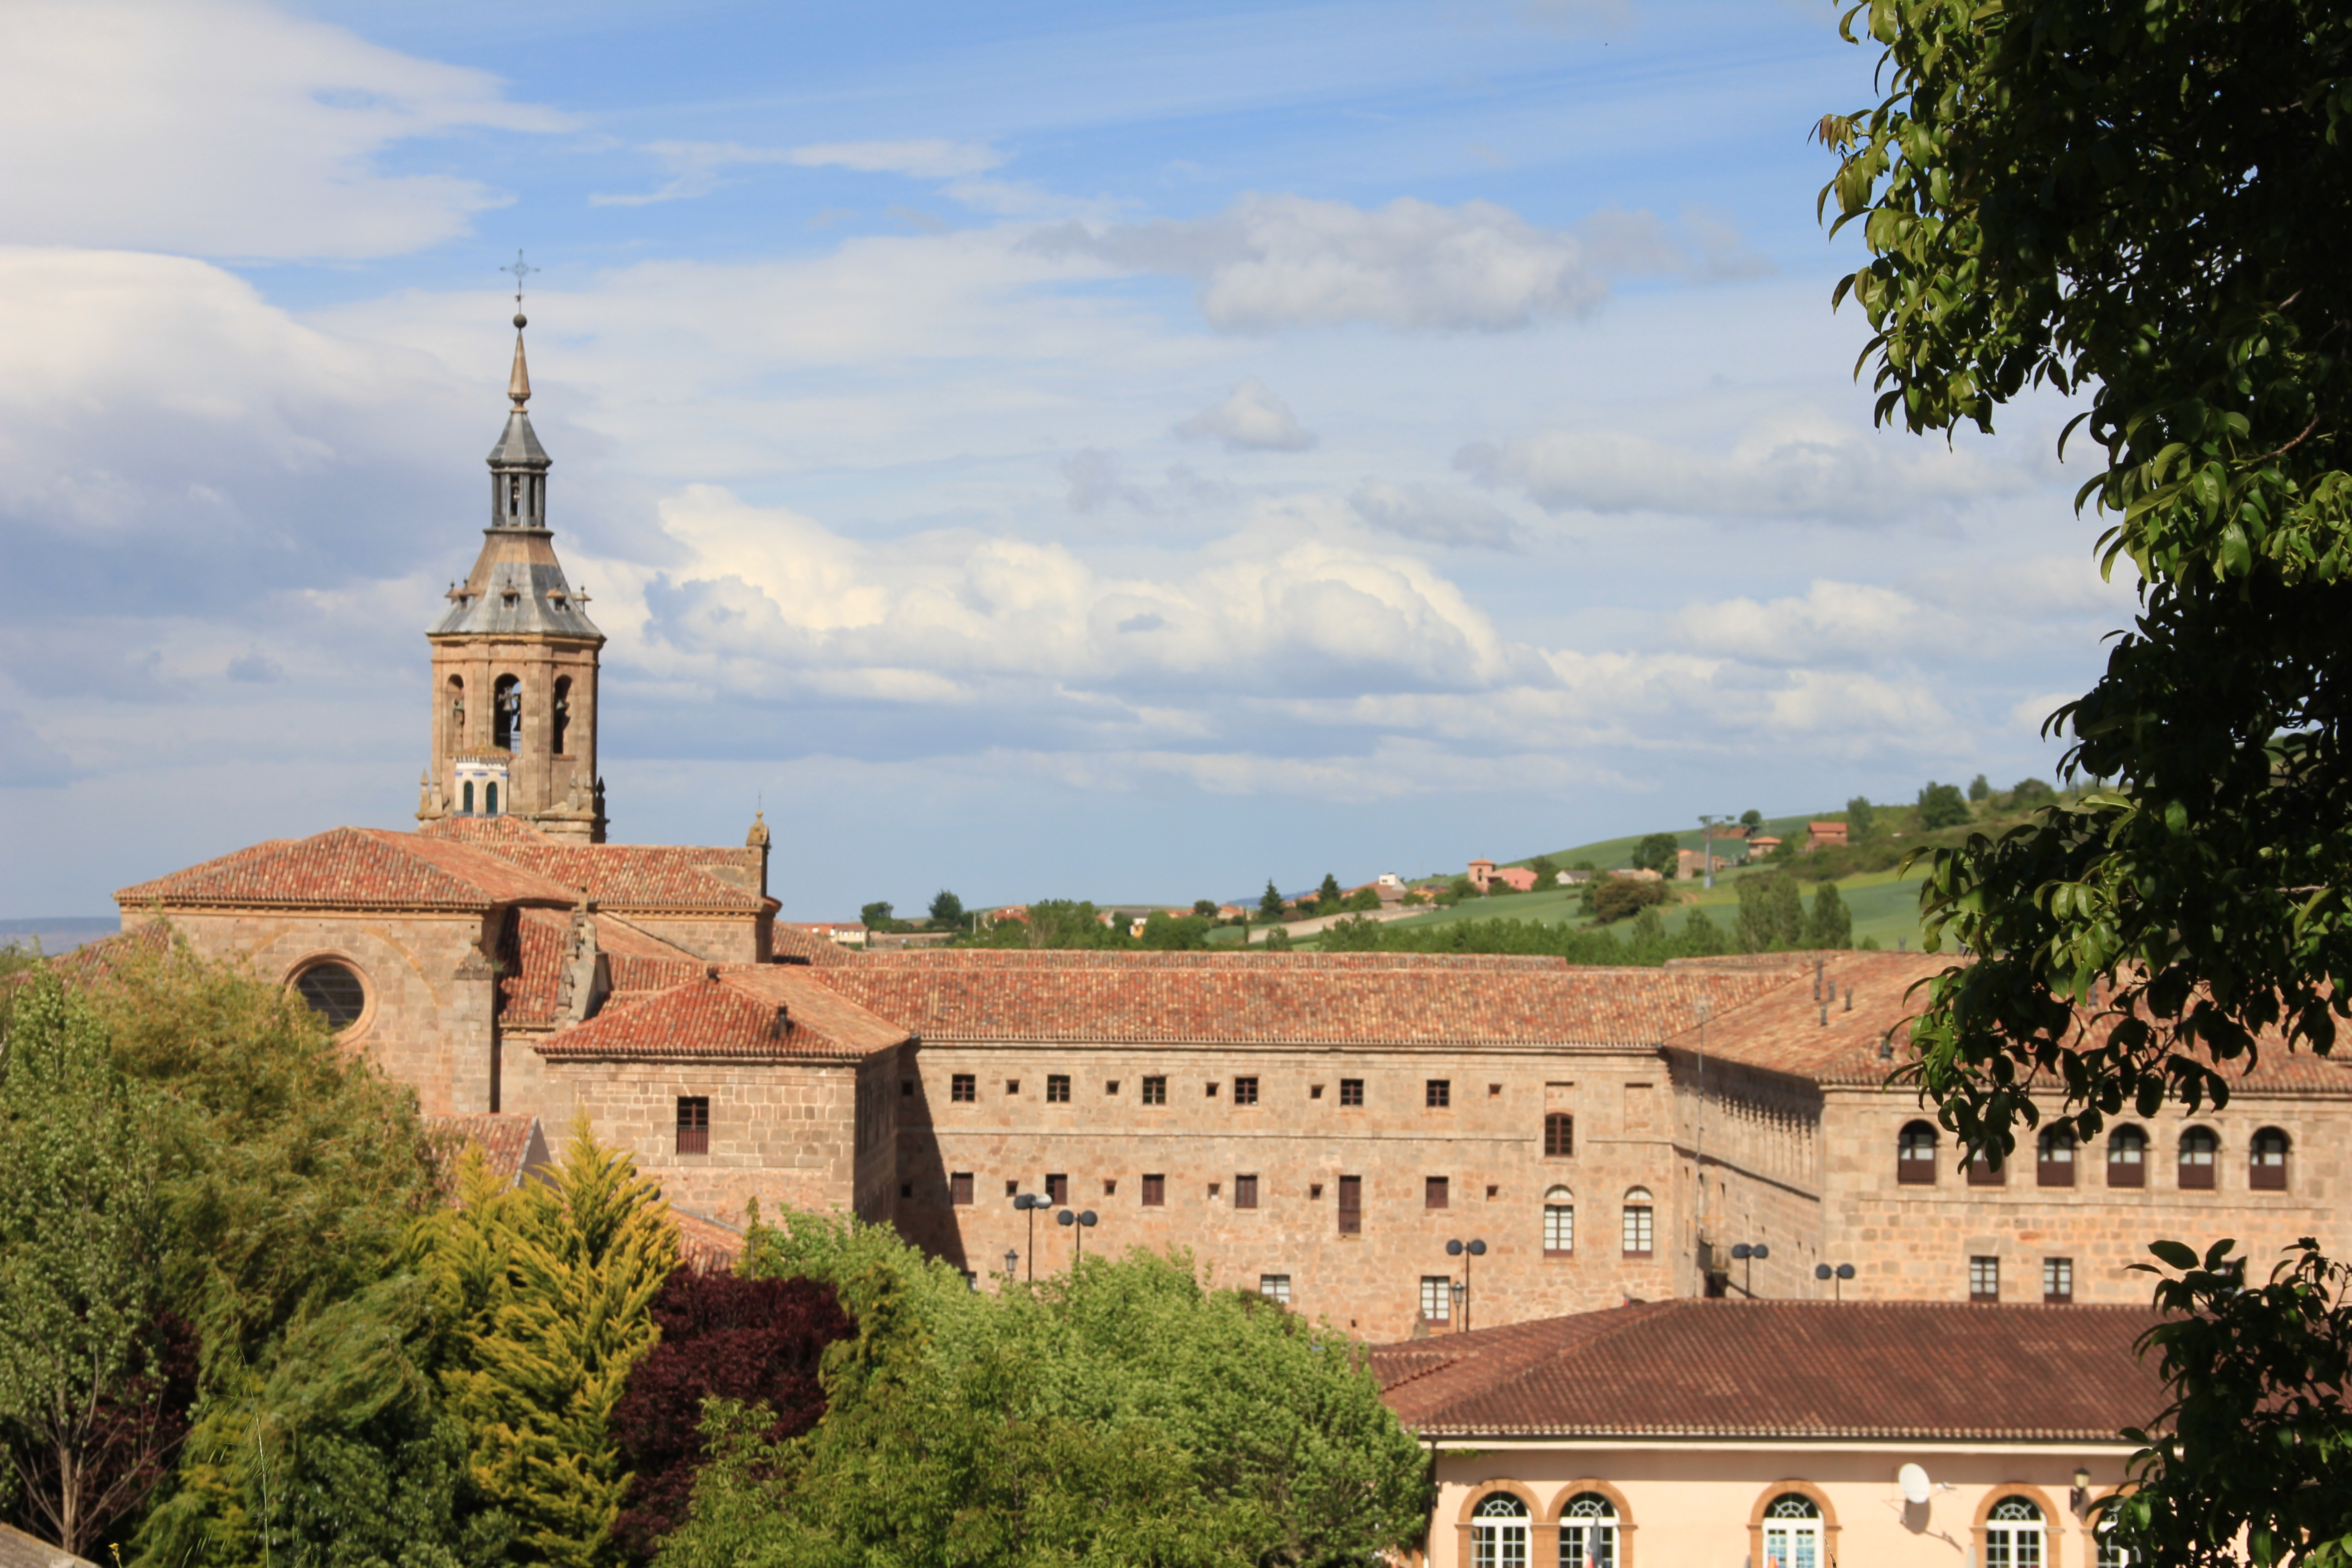 Cycle past the Yuso monastery in San Millan de la Cogolla